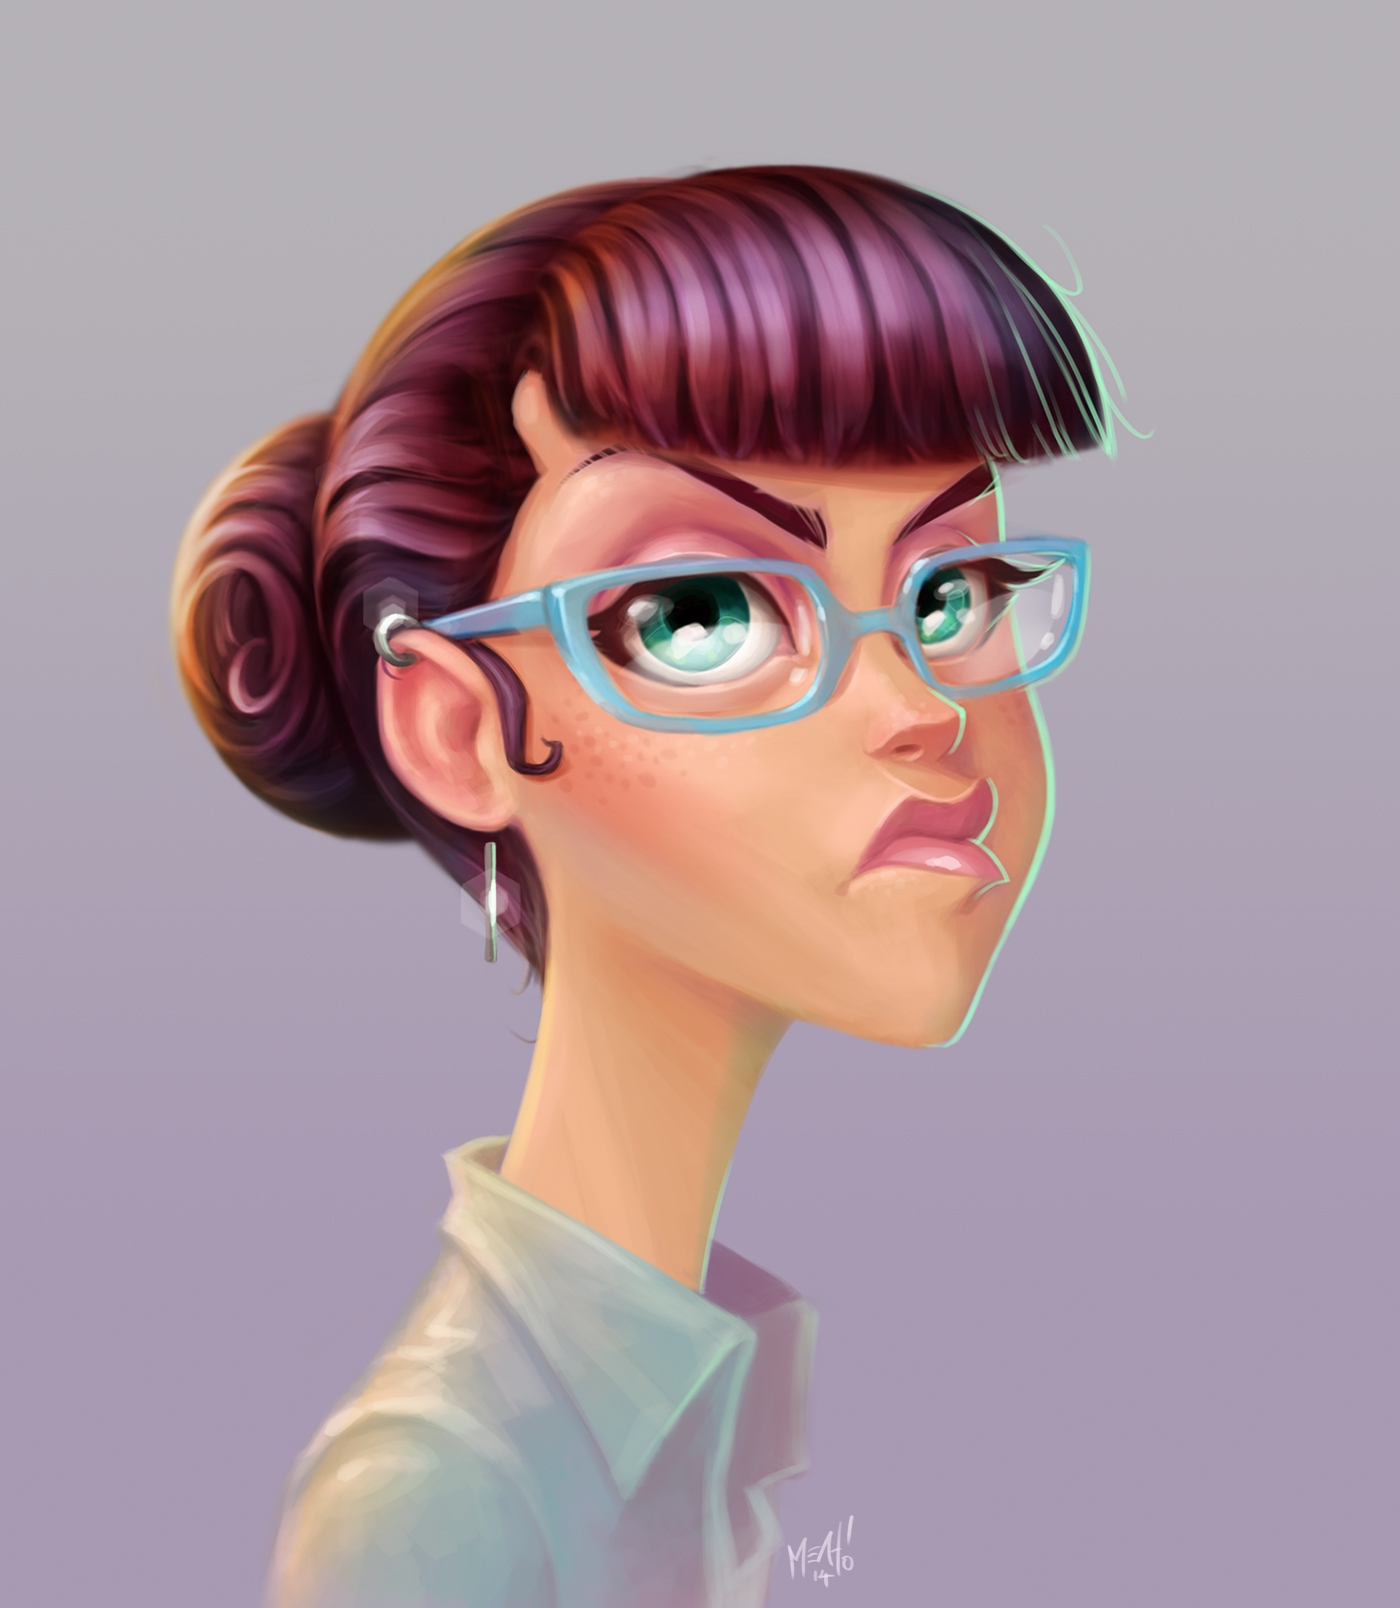 Glasses - illustration, painting - adman2808 | ello